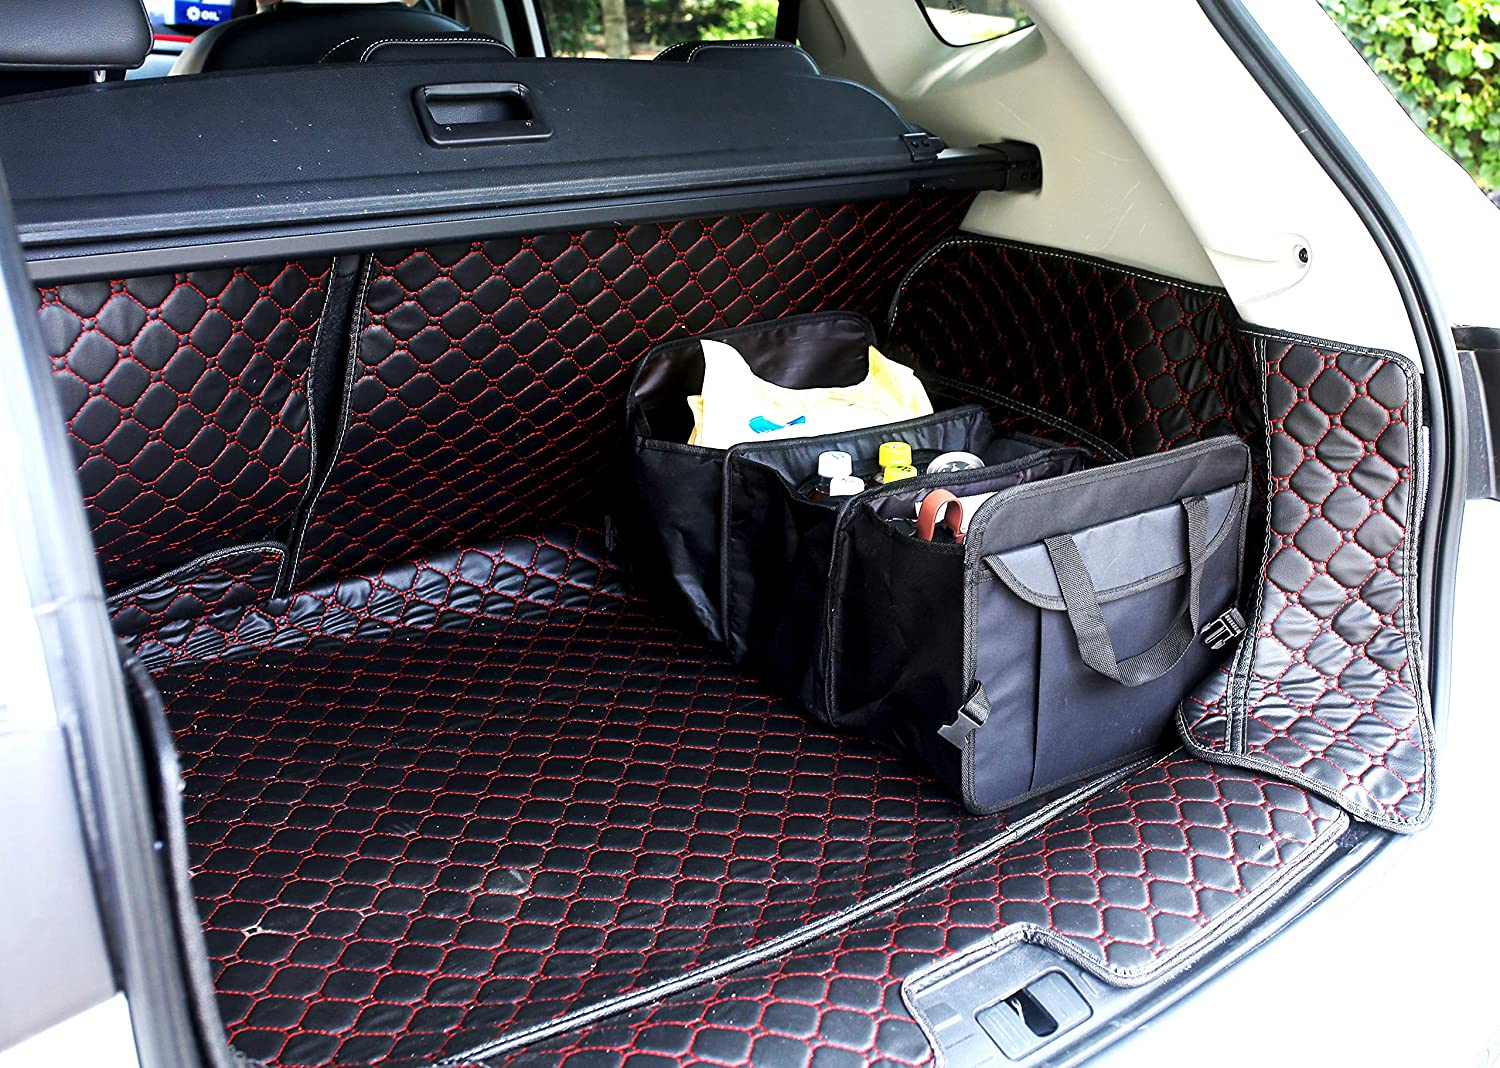 CARMAXKO Trunk Organizer Auto Storage Bag Collapsible Portable with Cooler Heat Reservation with Straps Aluminum Foil Cover for Car SUV for Road Trip Solid Pockets with Lid